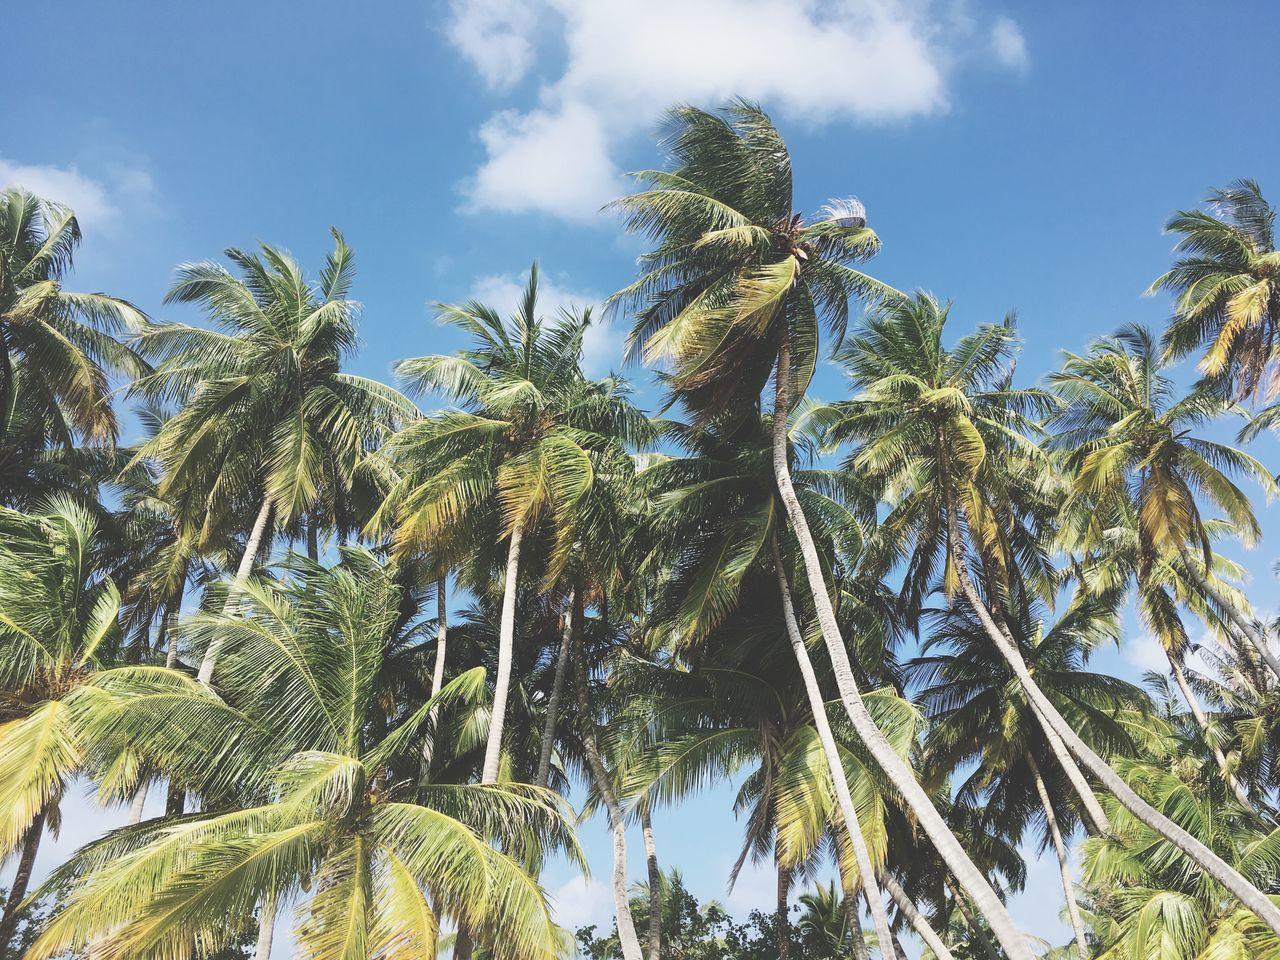 Maldives Growth Palm Tree Tree Low Angle View Nature Green Color Sky No People Day Outdoors Beauty In Nature Agriculture